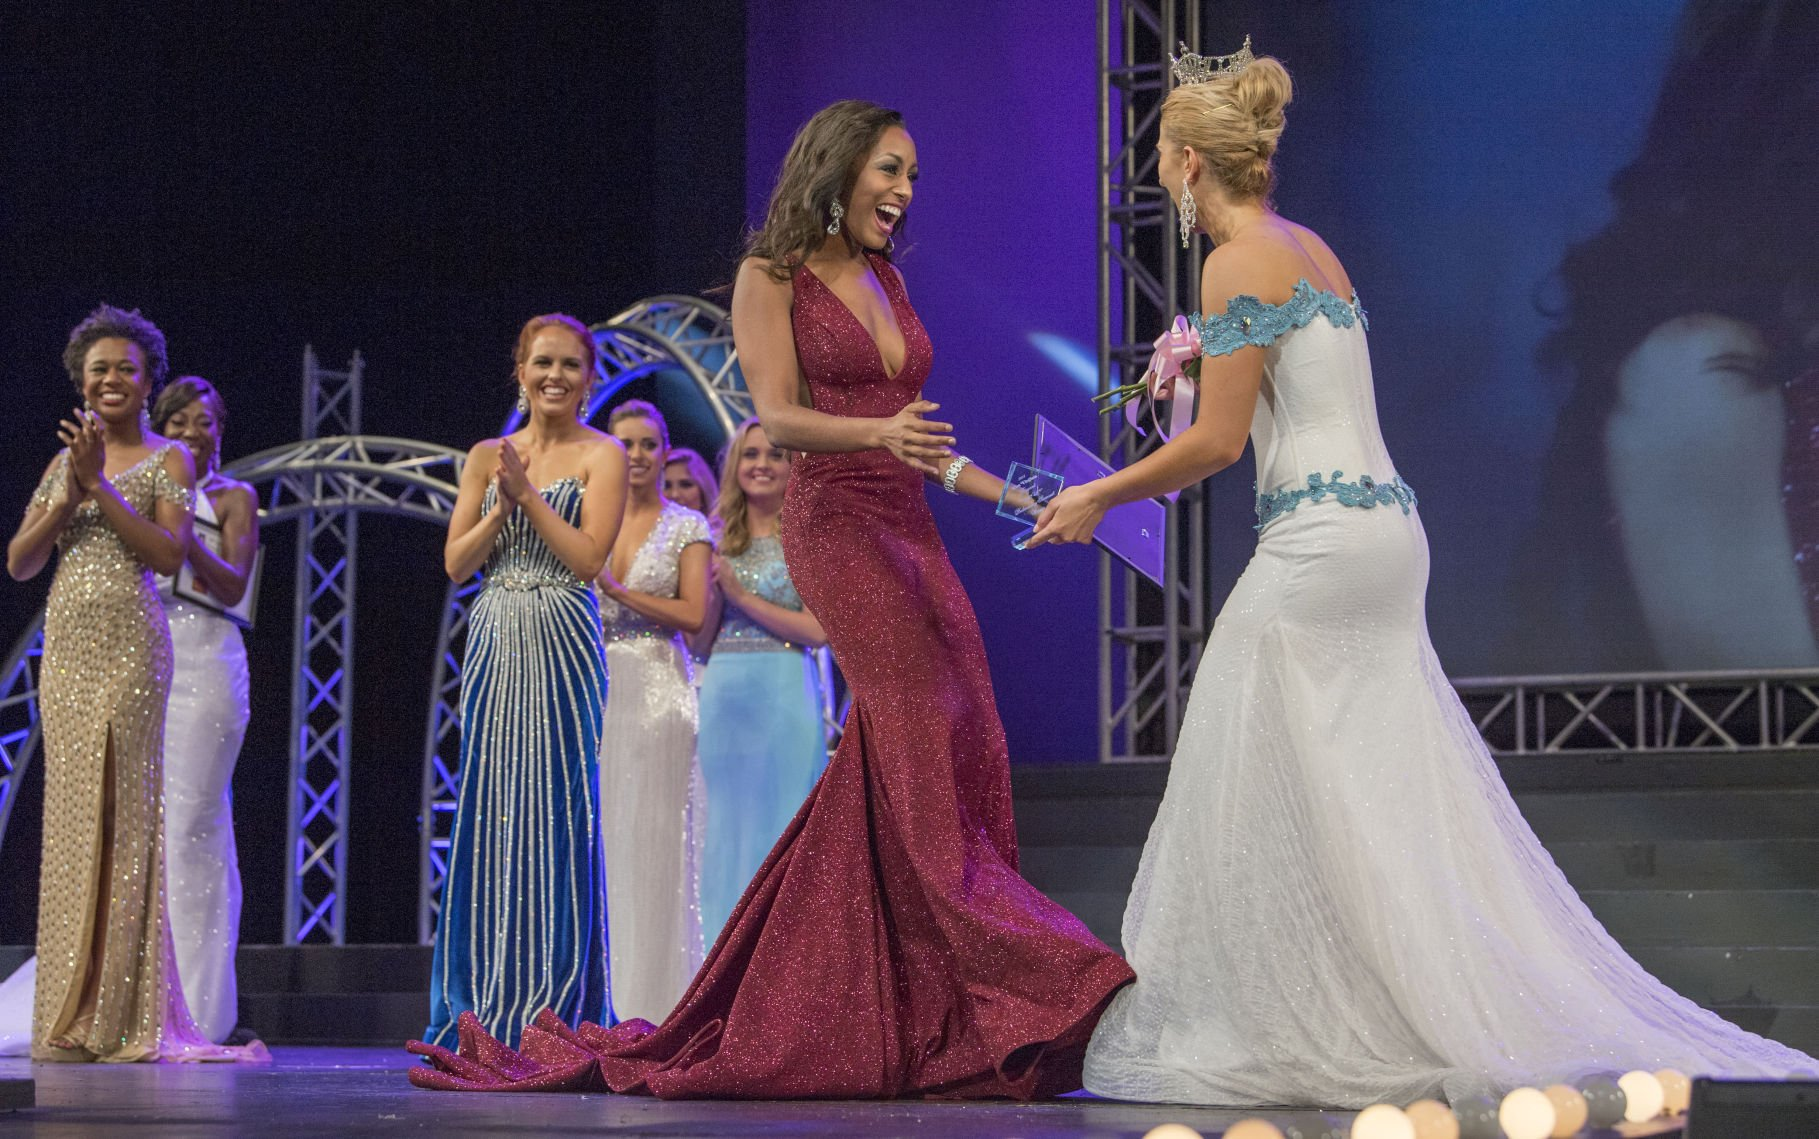 Miss Shreveport crowned the new Miss Louisiana